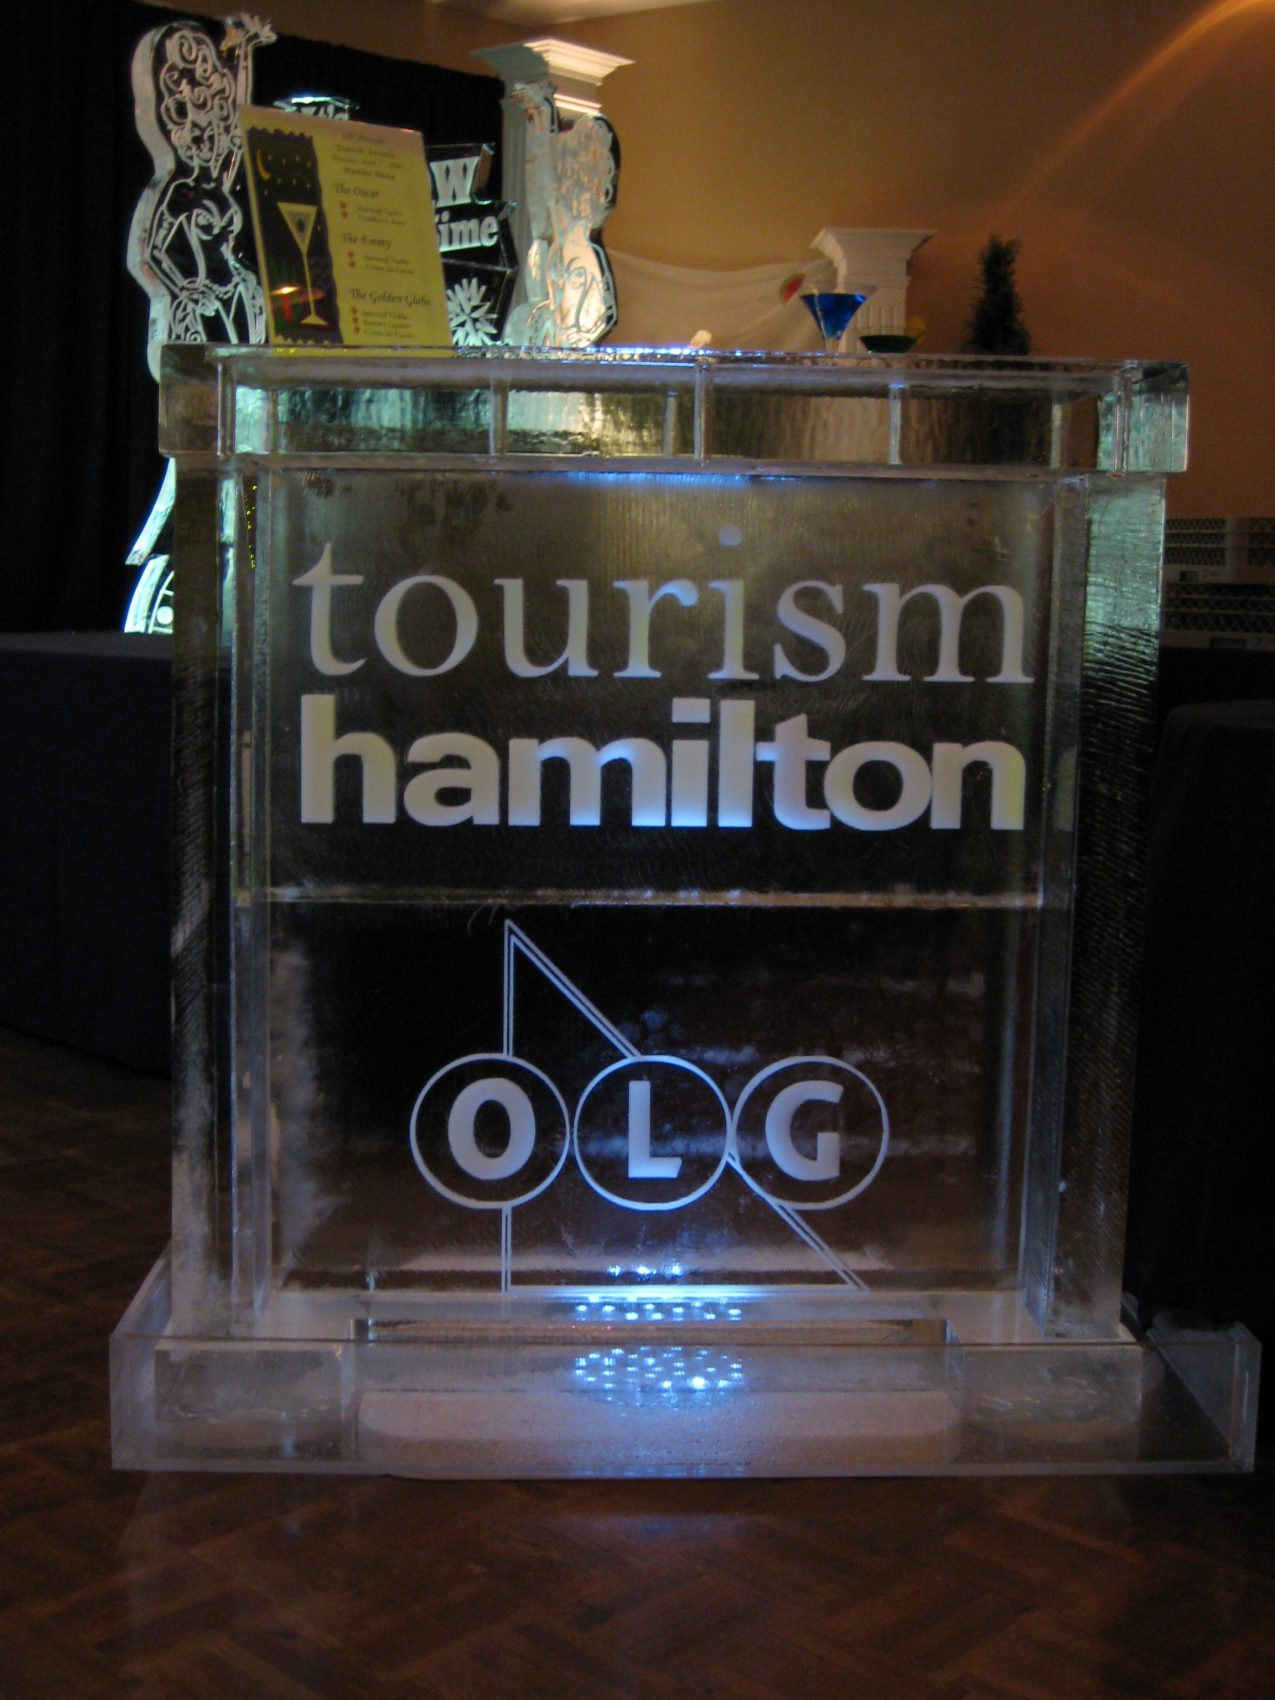 Tourism Hamilton OLG Ice Bar